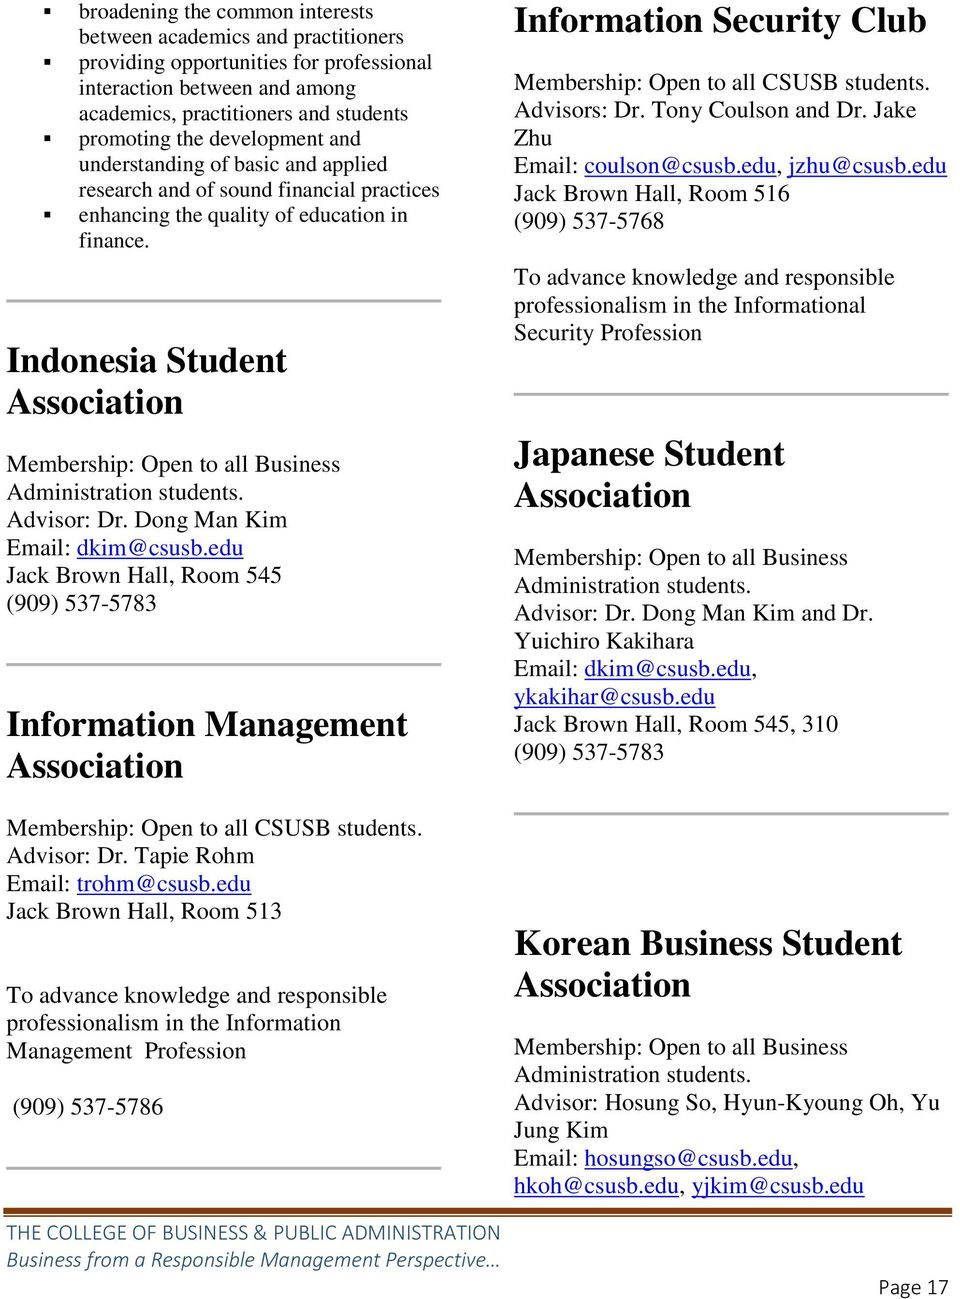 Indonesia Student Association Membership: Open to all Business Administration students. Advisor: Dr. Dong Man Kim Email: dkim@csusb.